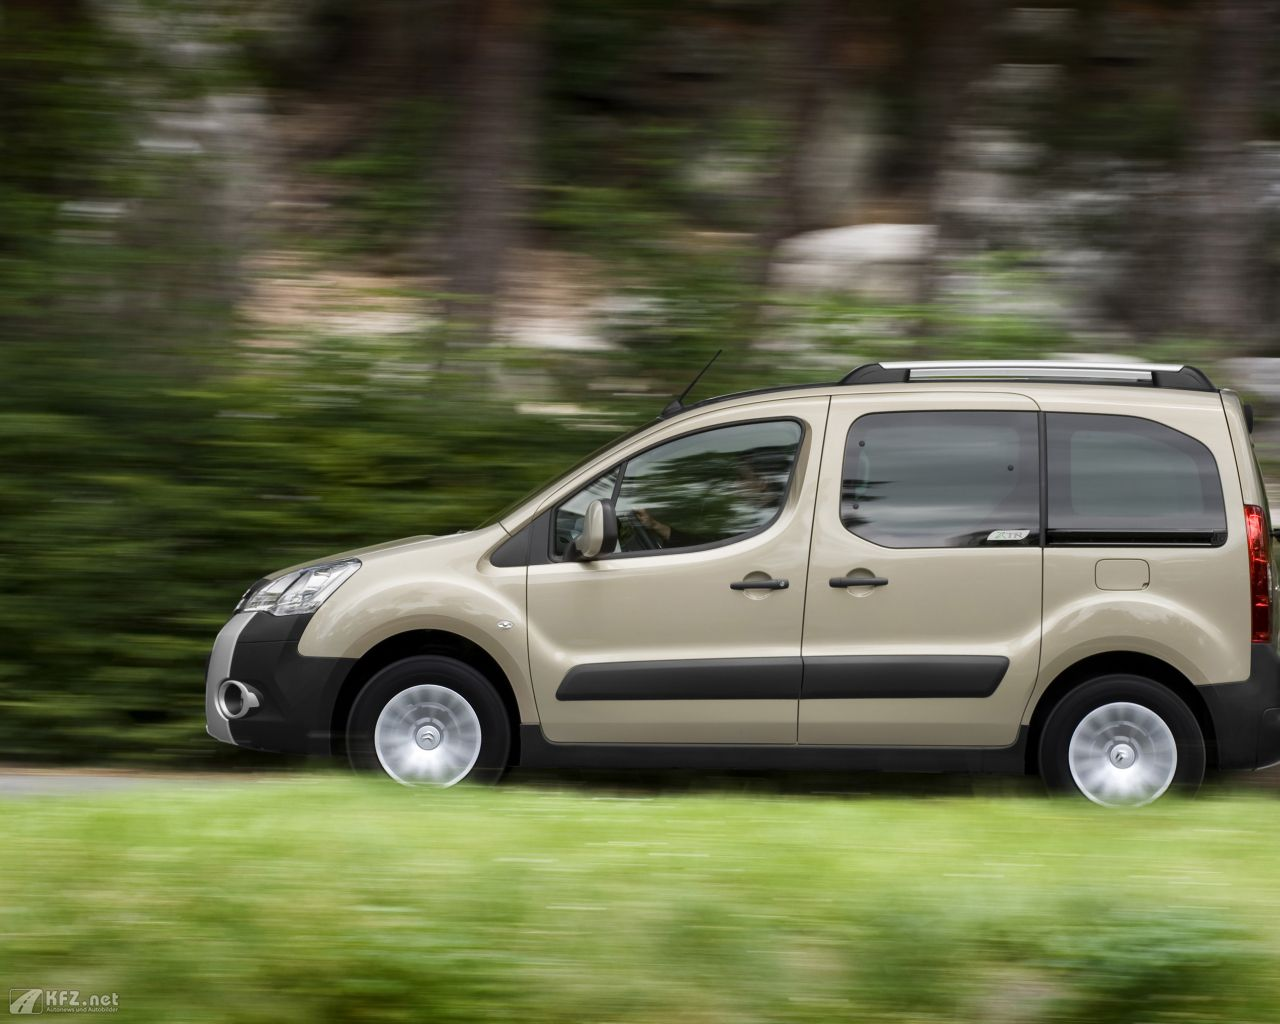 citroen-berlingo-1280x1024-131